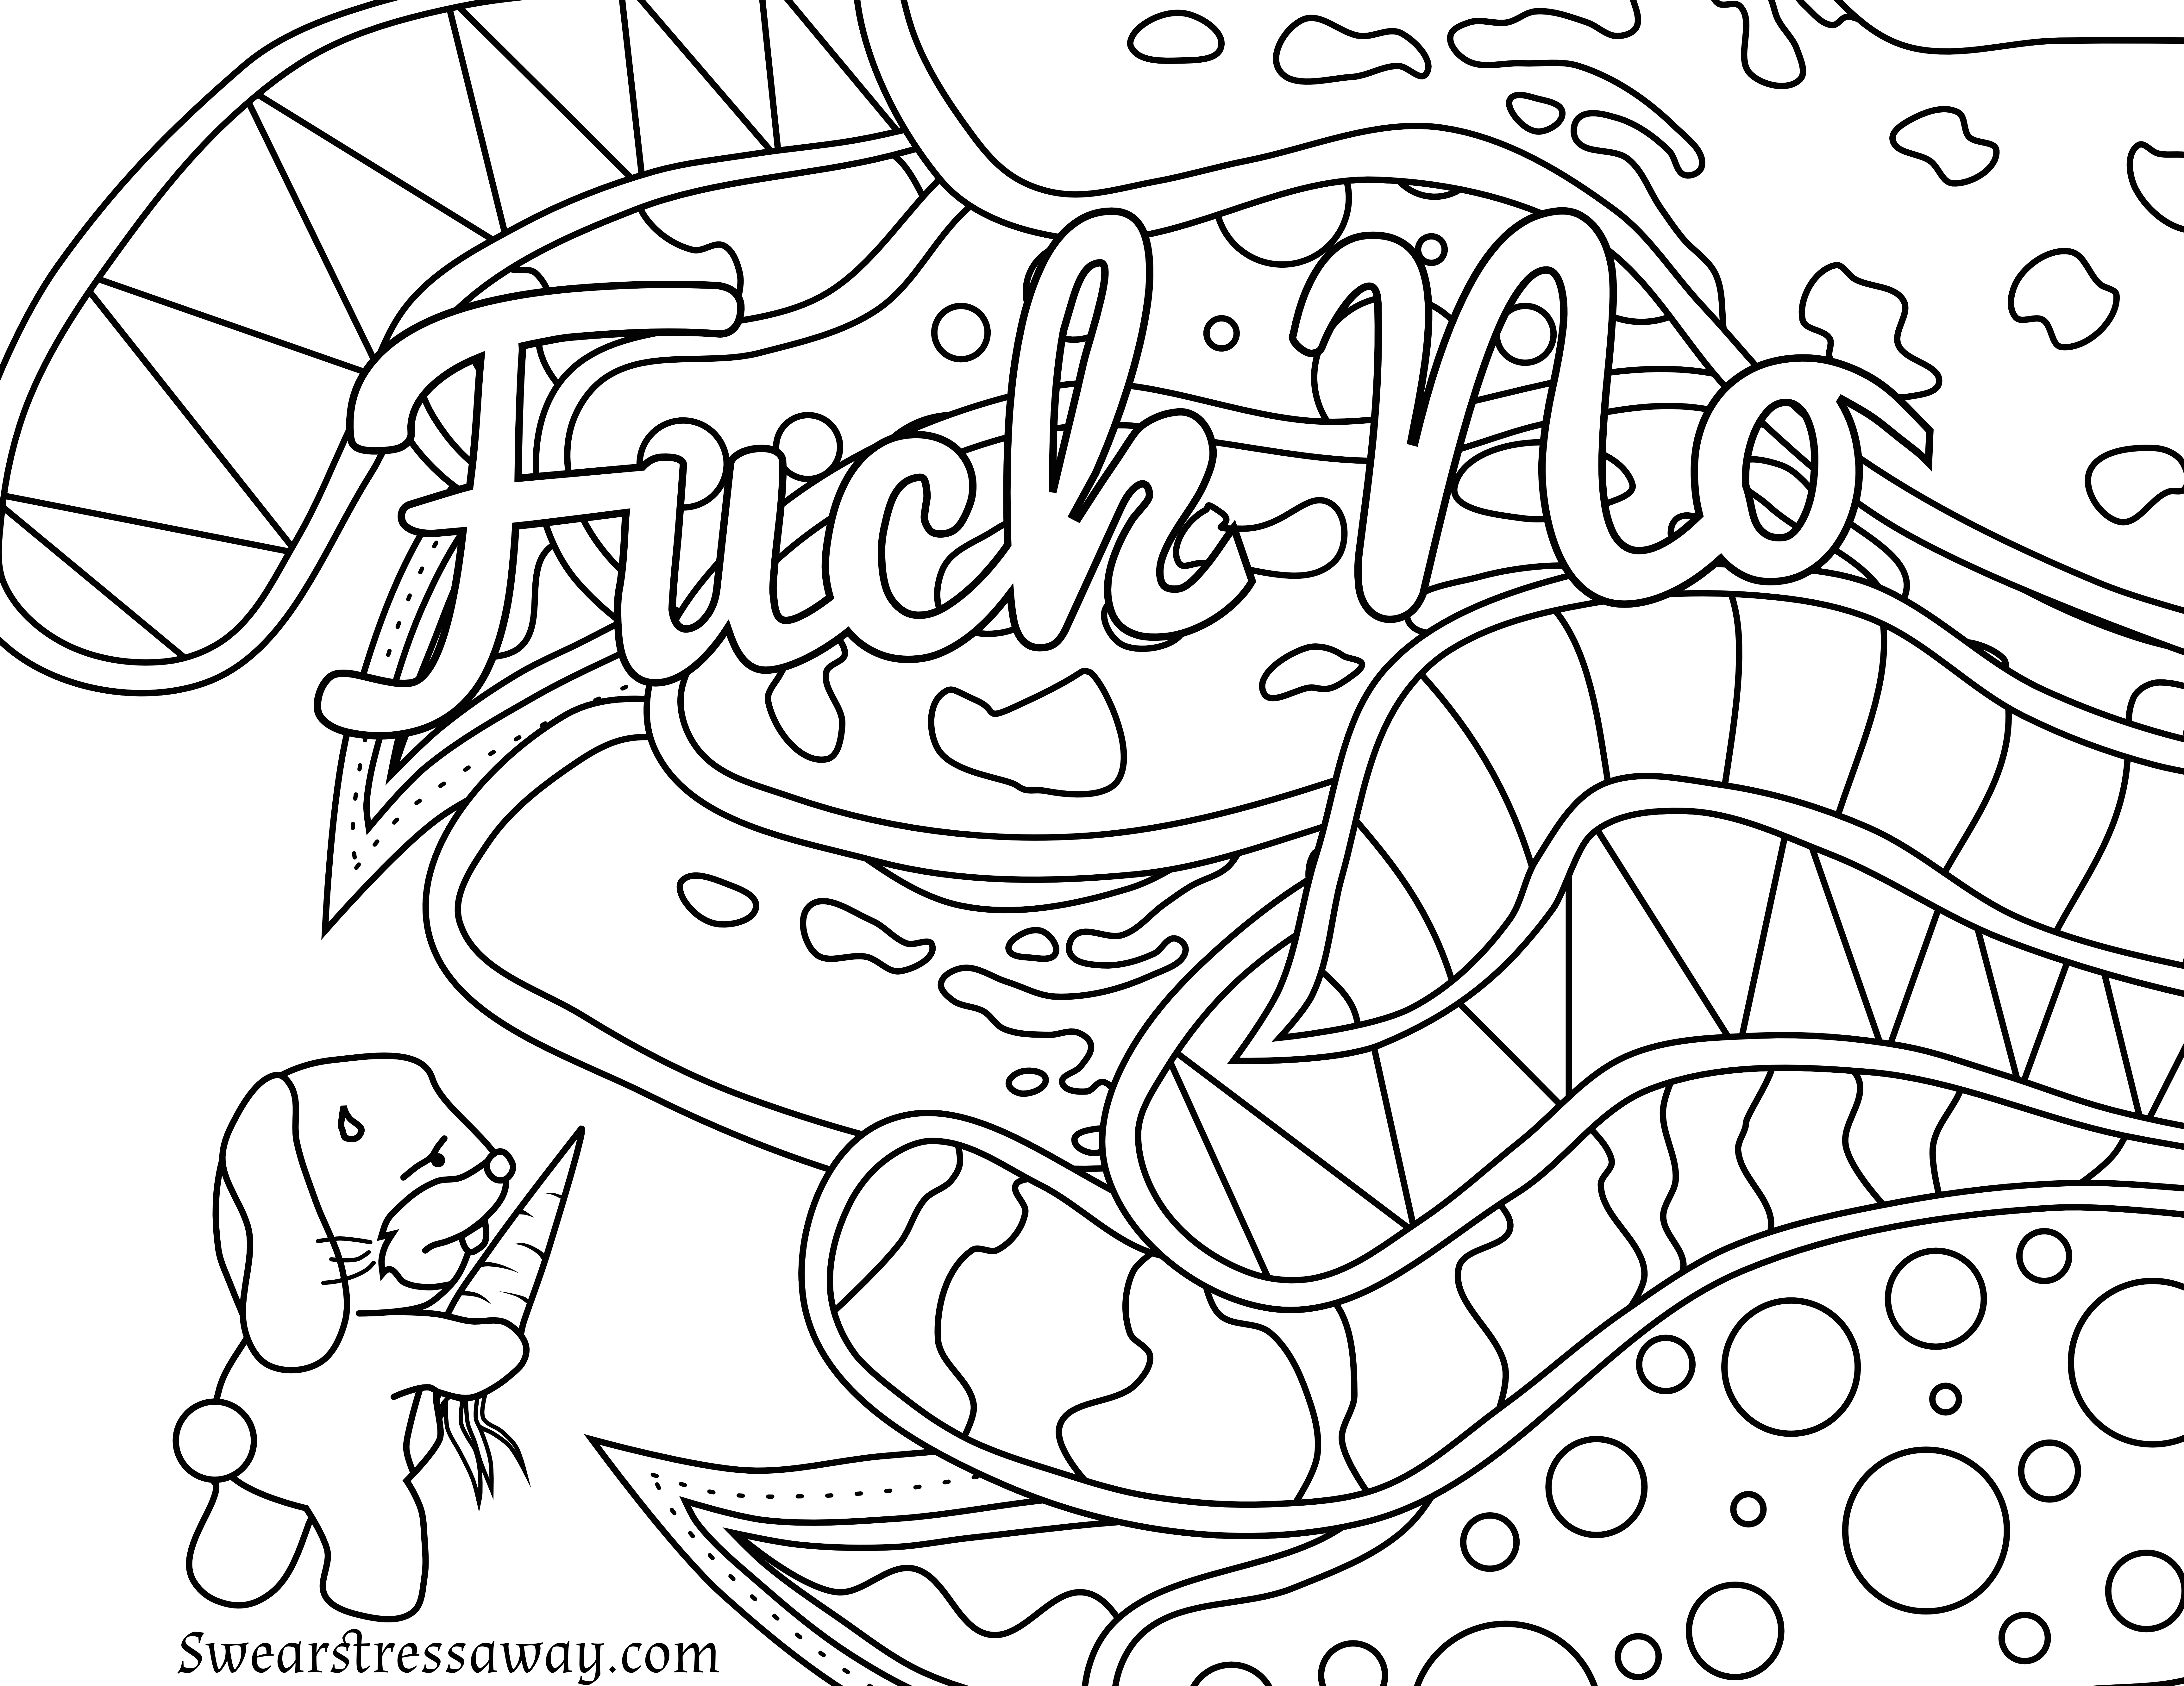 Inappropriate coloring pages coloring page extraordinary inappropriate coloring pages for adults